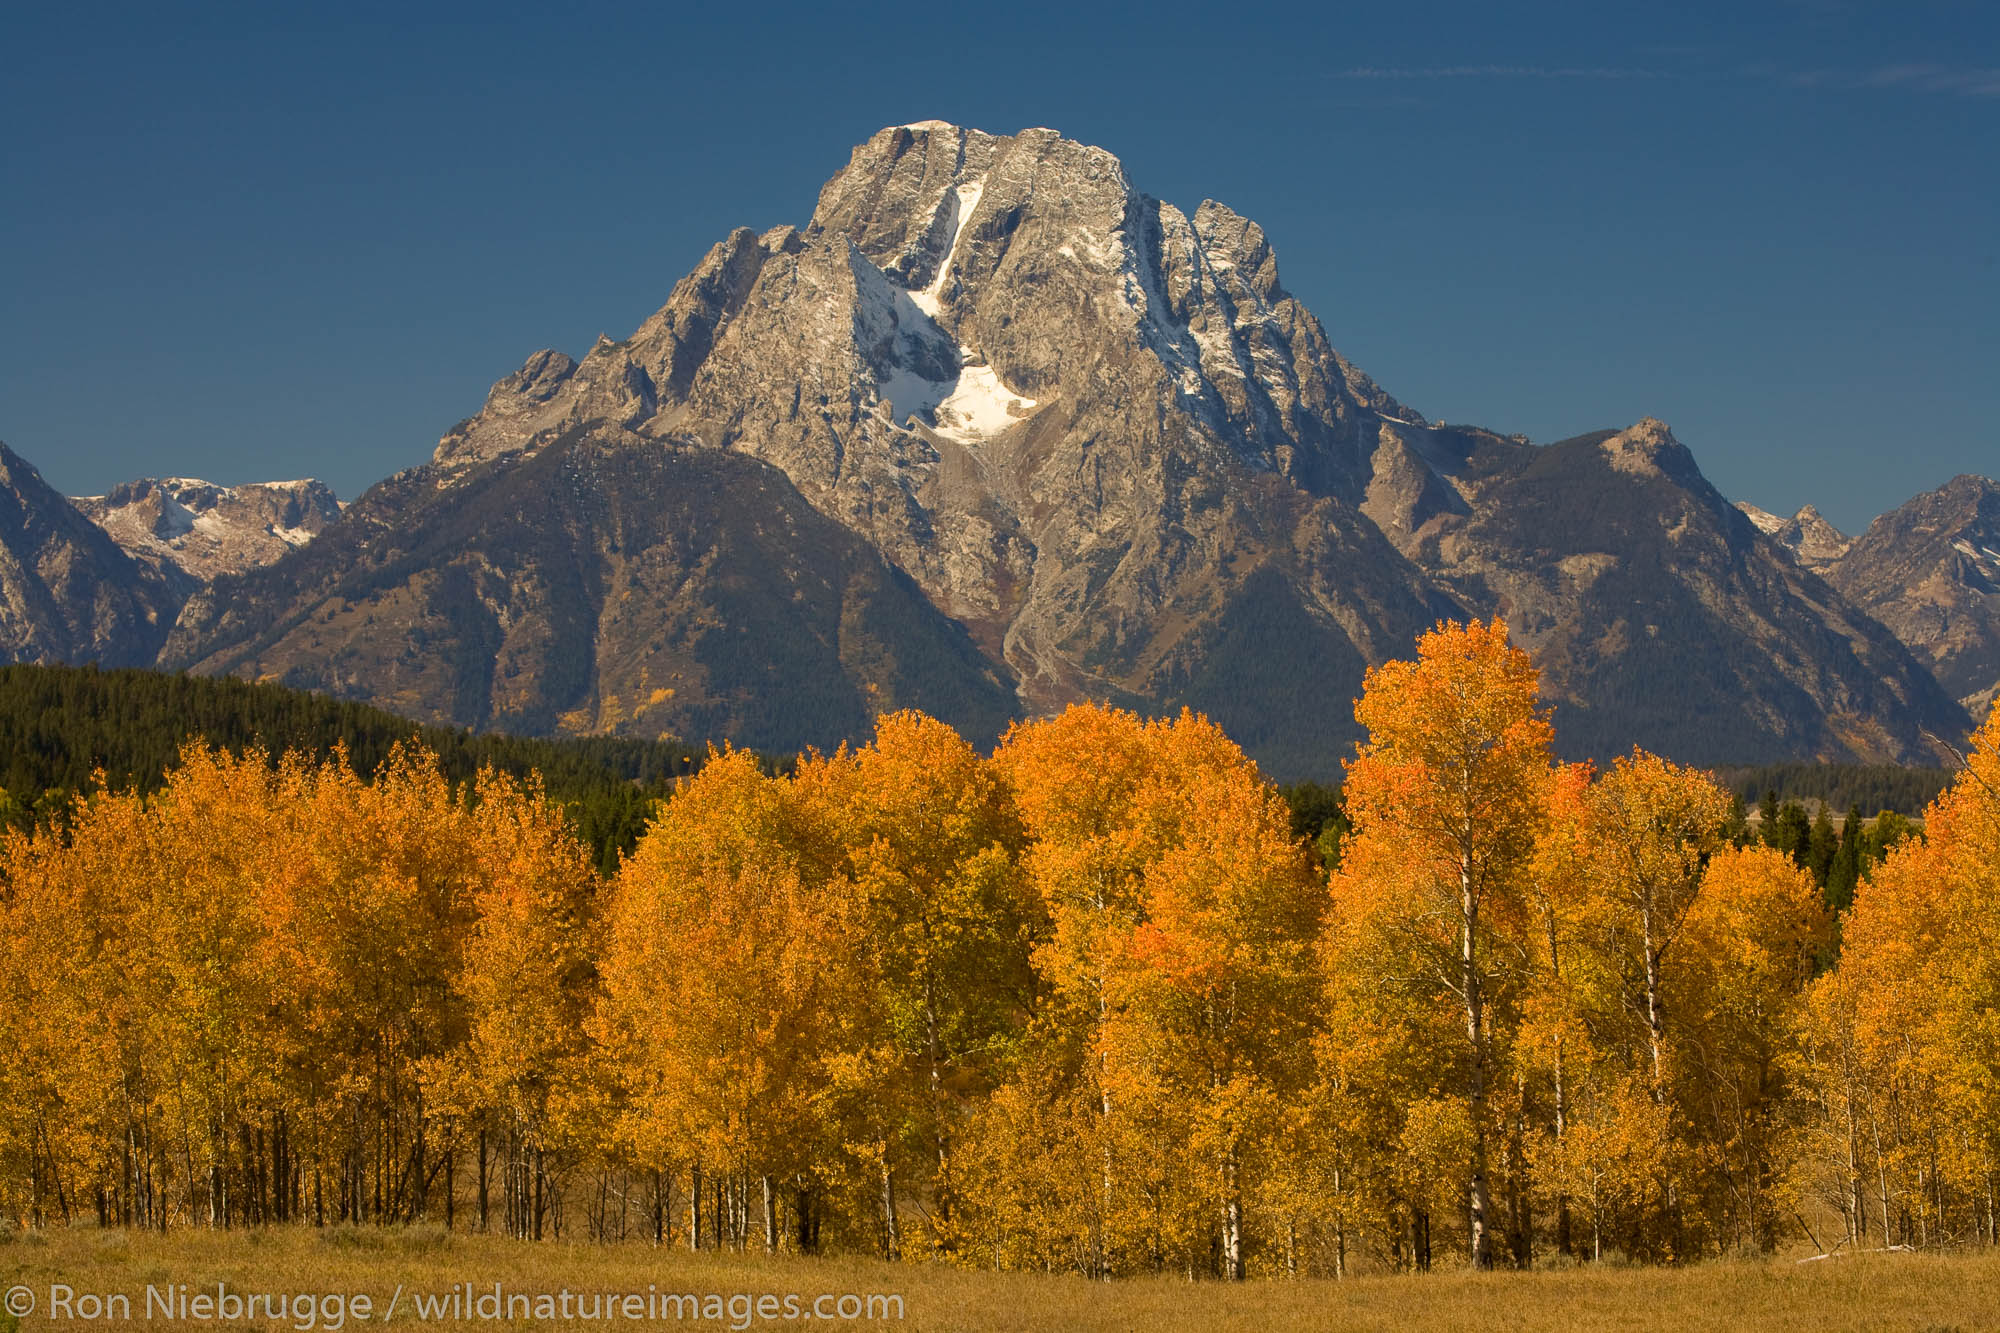 Mount Moran from Oxbow Bend, Grand Teton National Park, Wyoming.